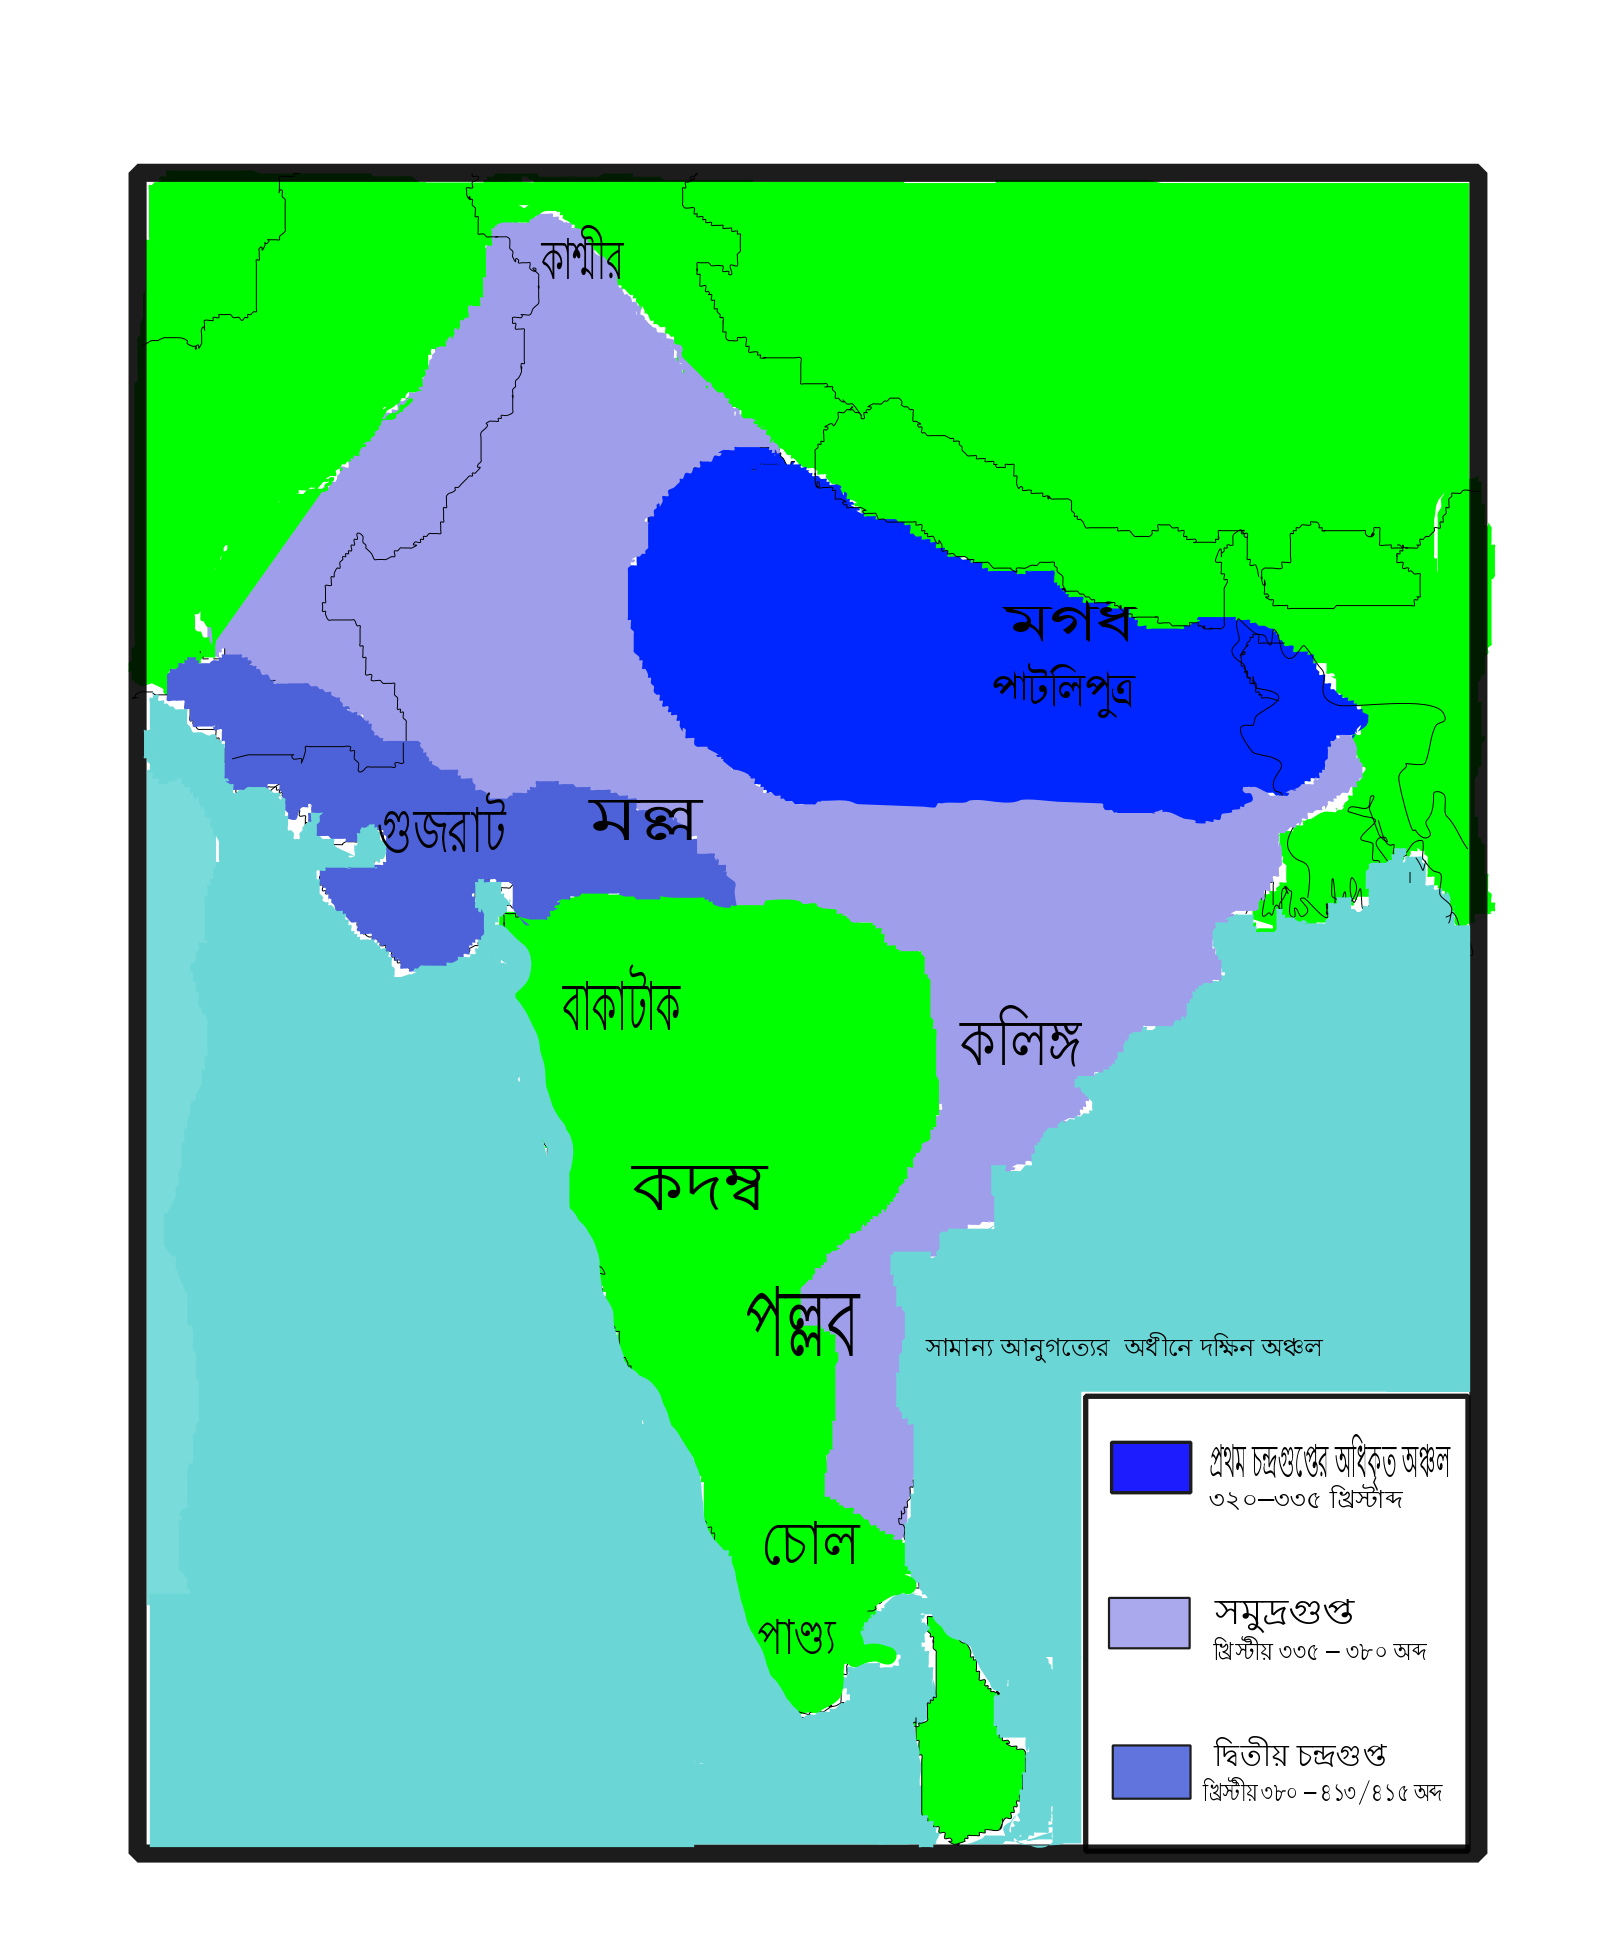 Filegupta empire bengali mapg wikimedia commons filegupta empire bengali mapg gumiabroncs Gallery